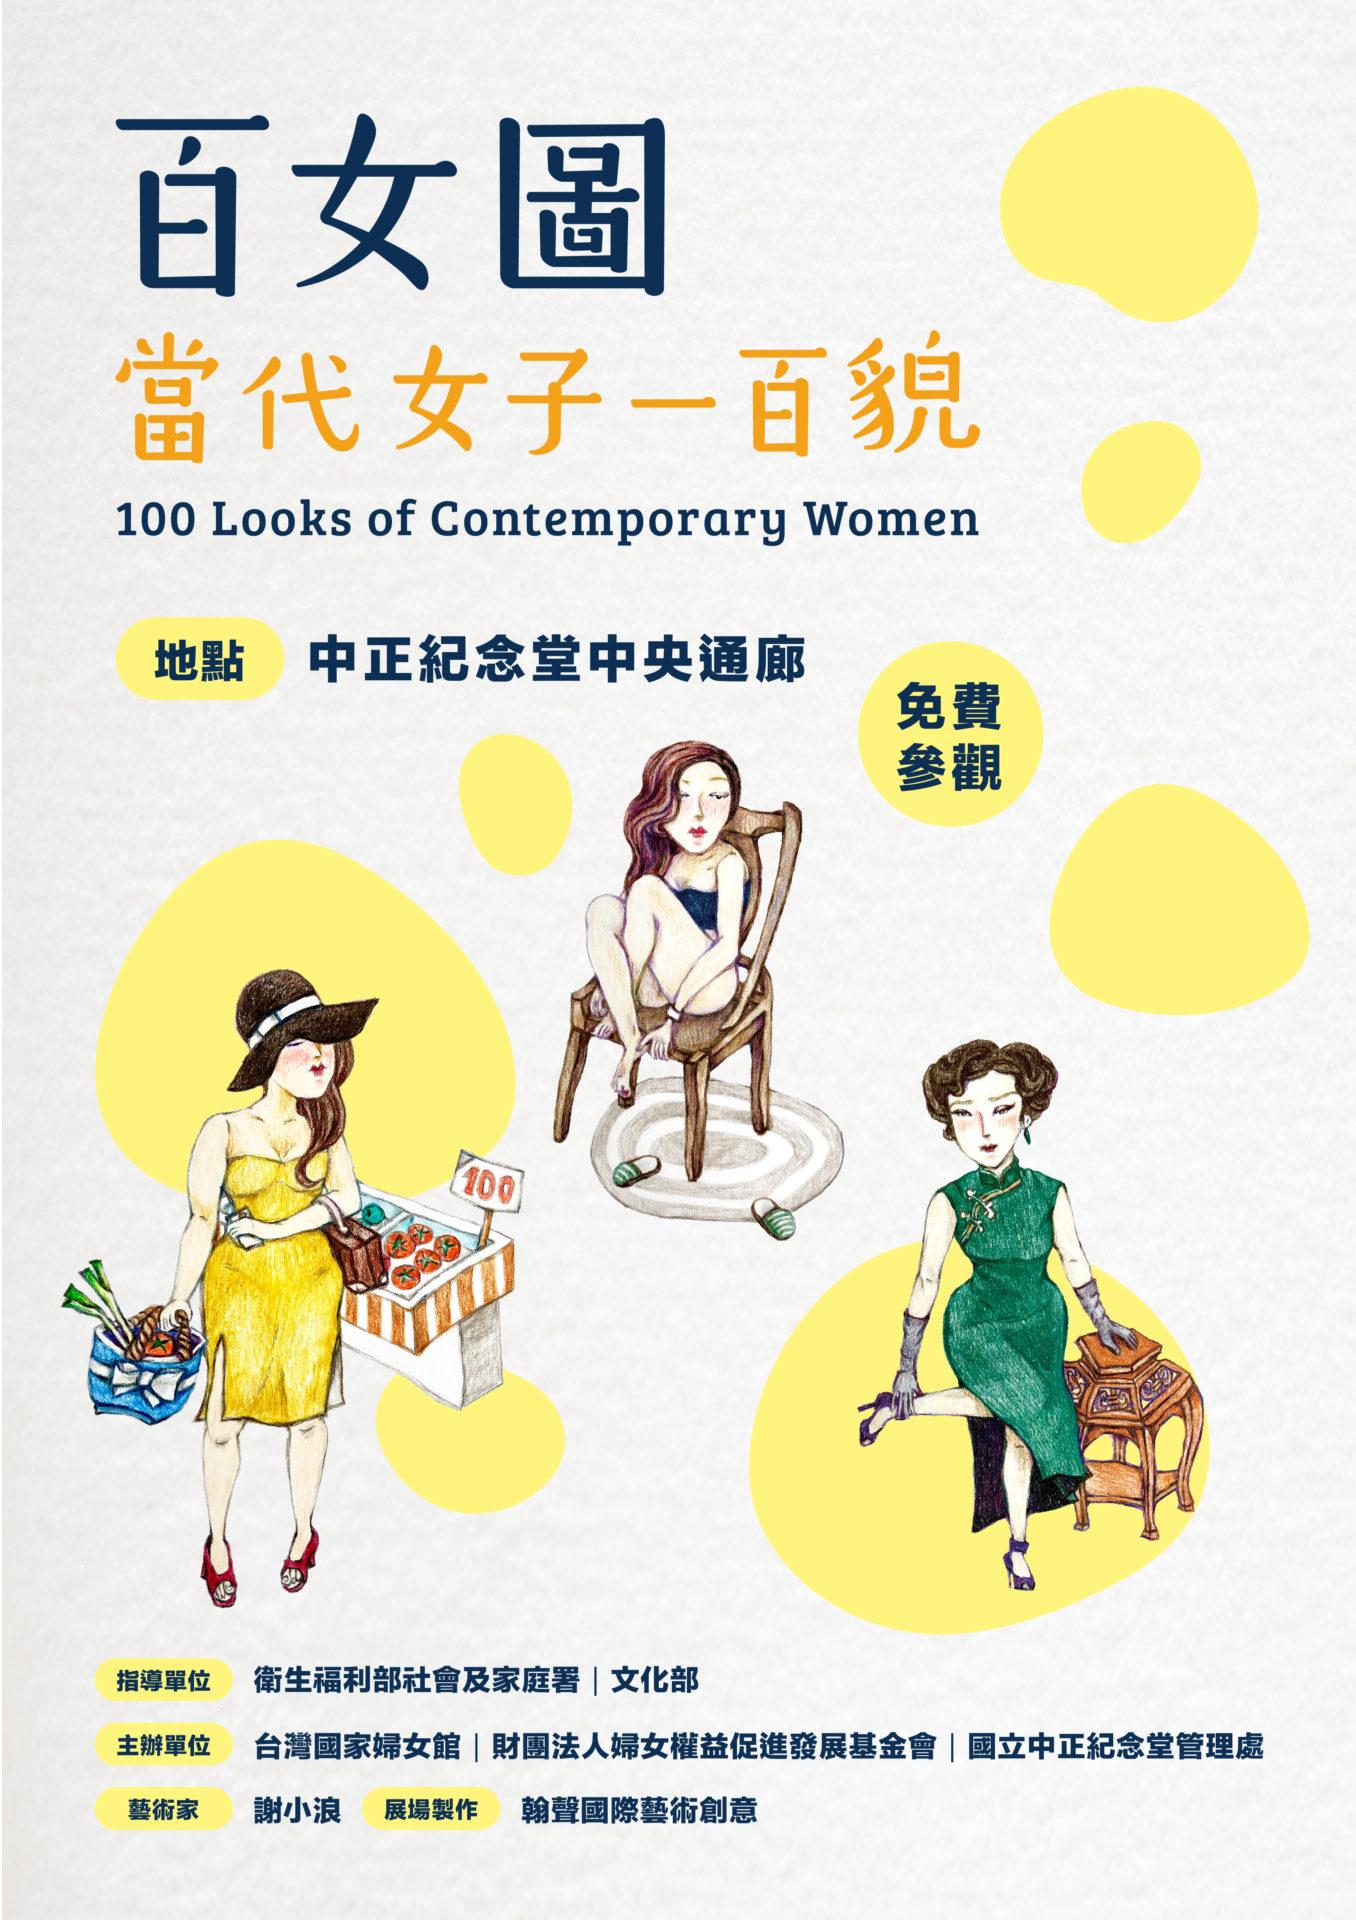 '100 Looks of Contemporary Women'